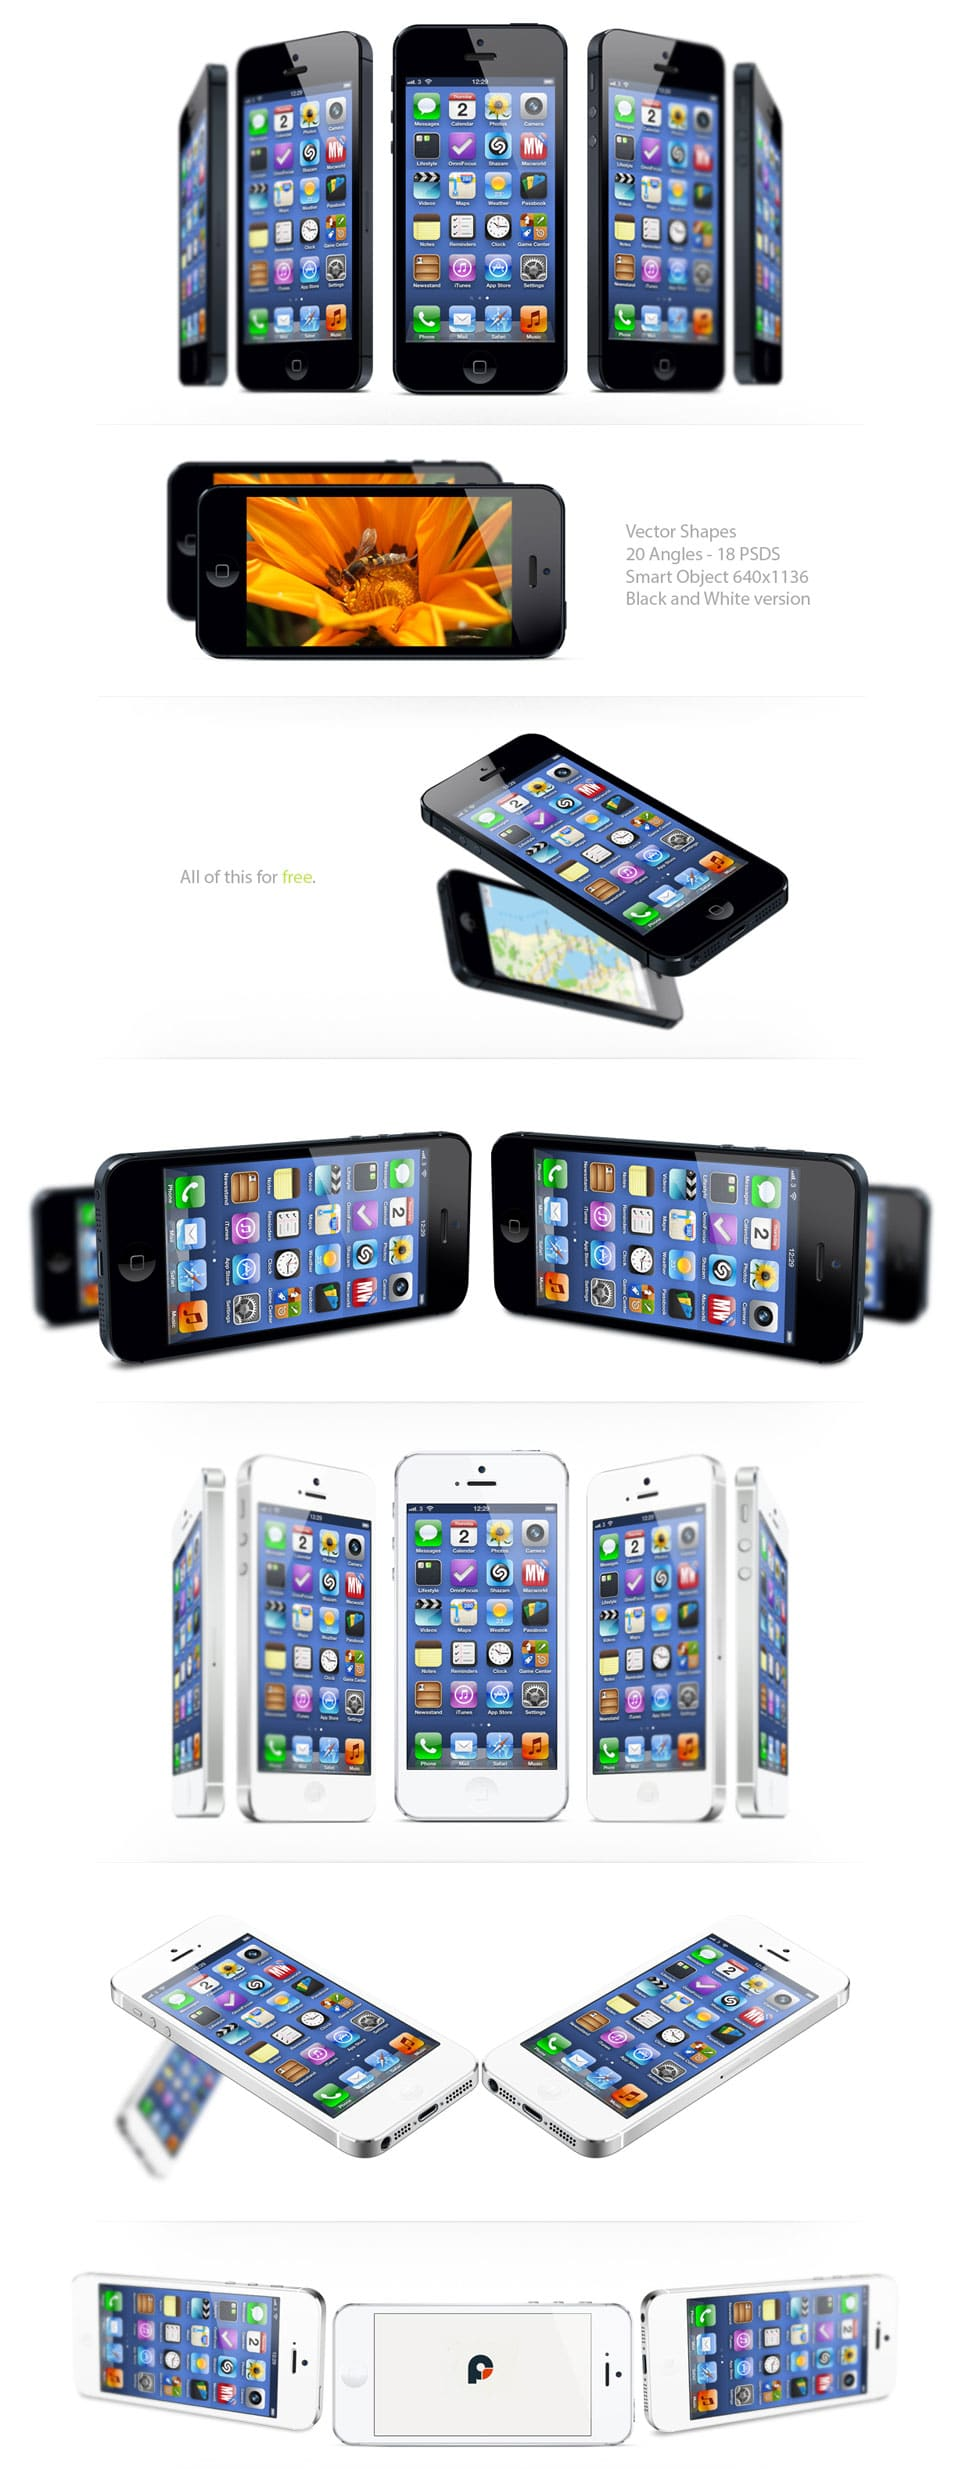 iPhone 5 Mock ups FREEMIUM